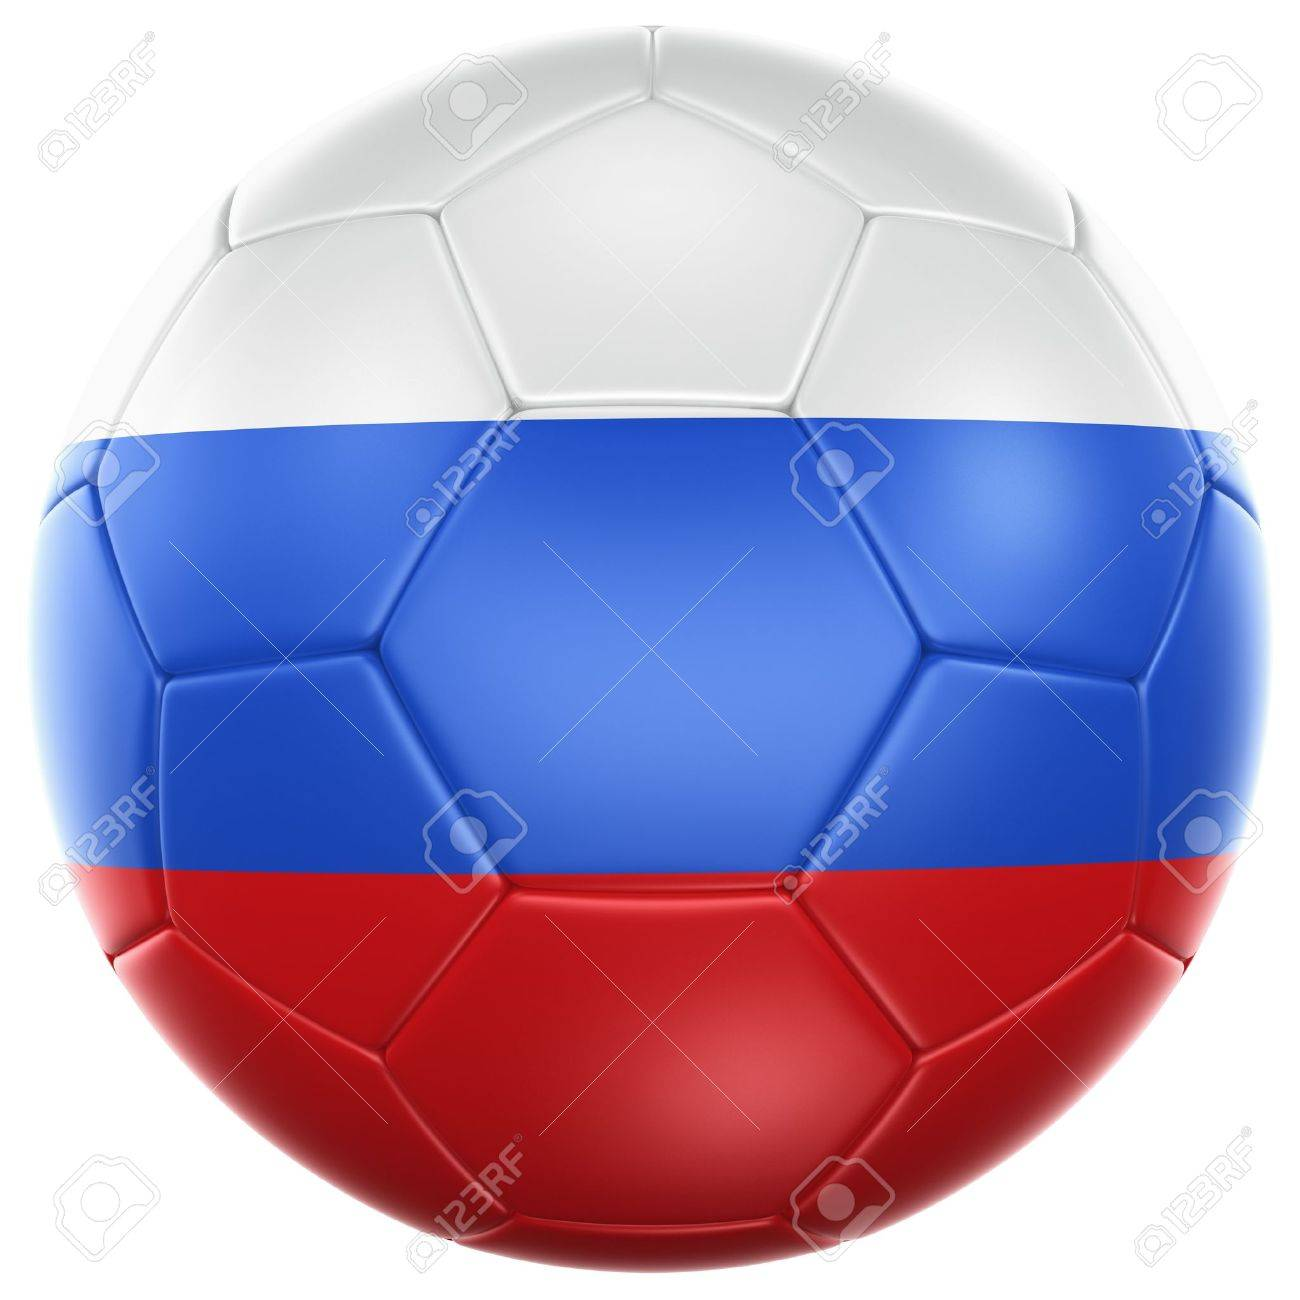 3d rendering of a Russian soccer ball isolated on a white background Stock  Photo - 12905006 769a3d1ddda9